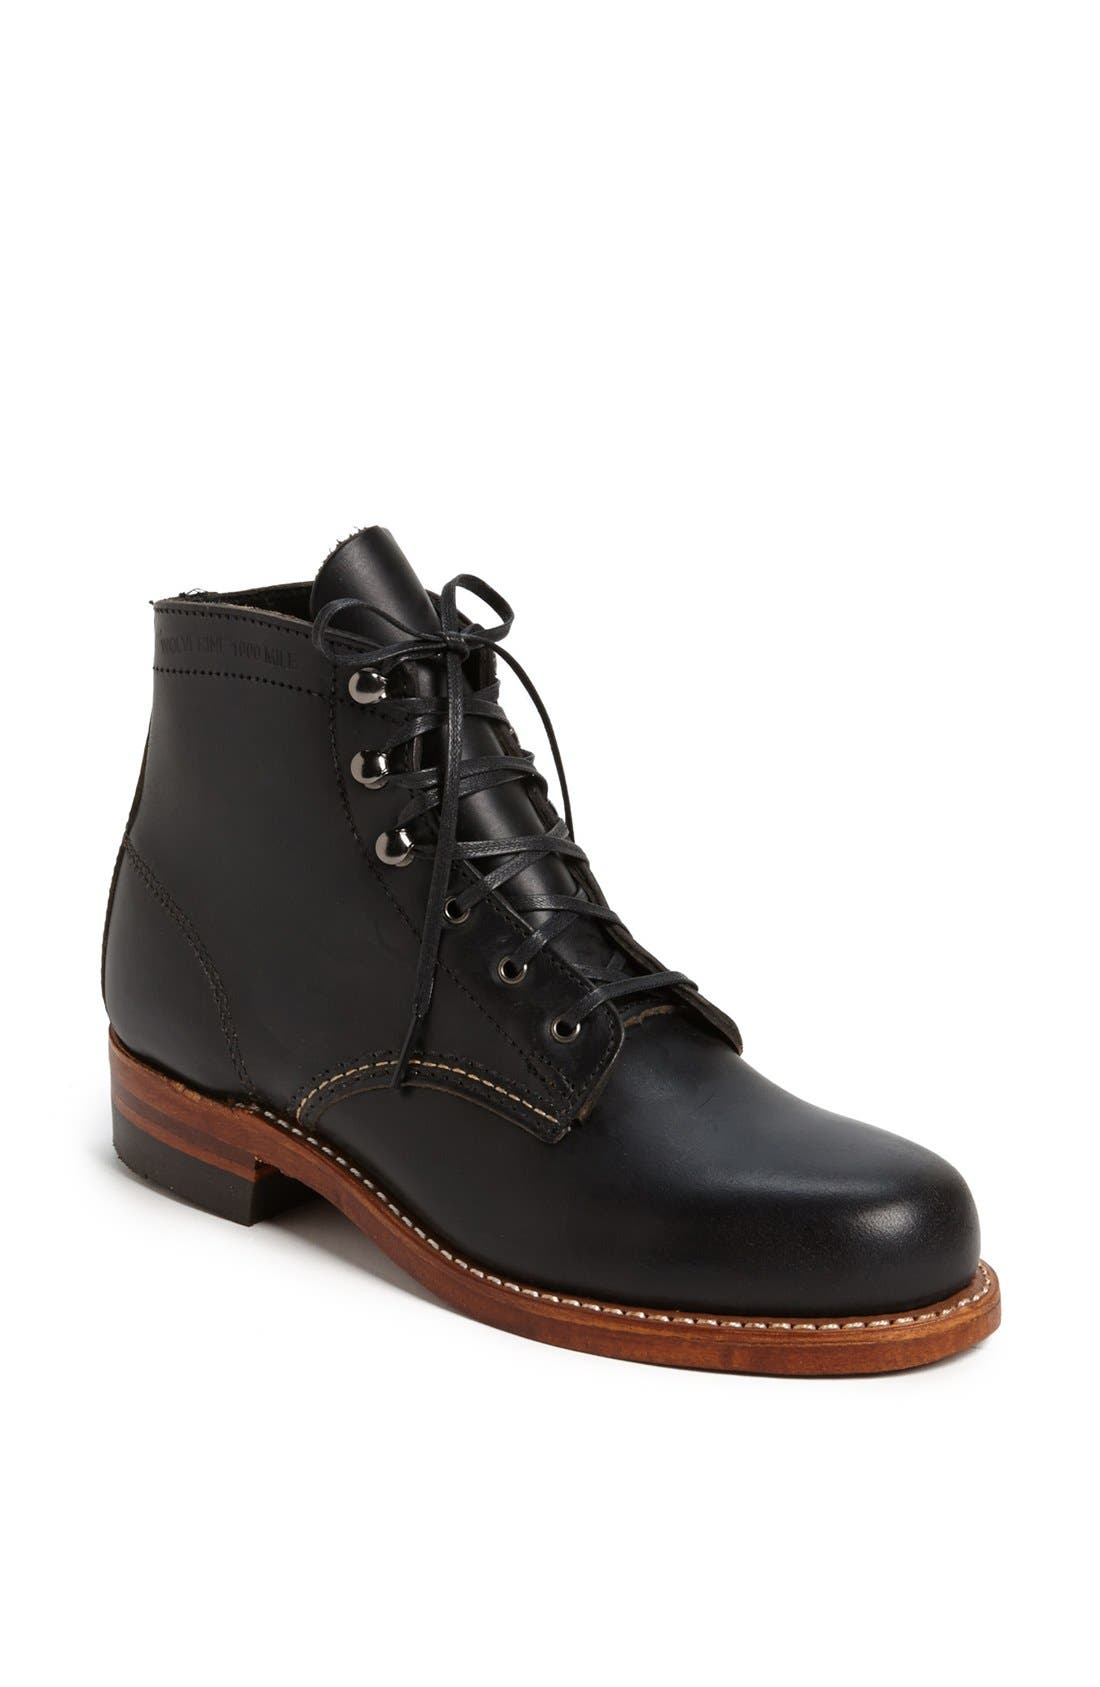 '1000 Mile' Leather Boot, Main, color, 001